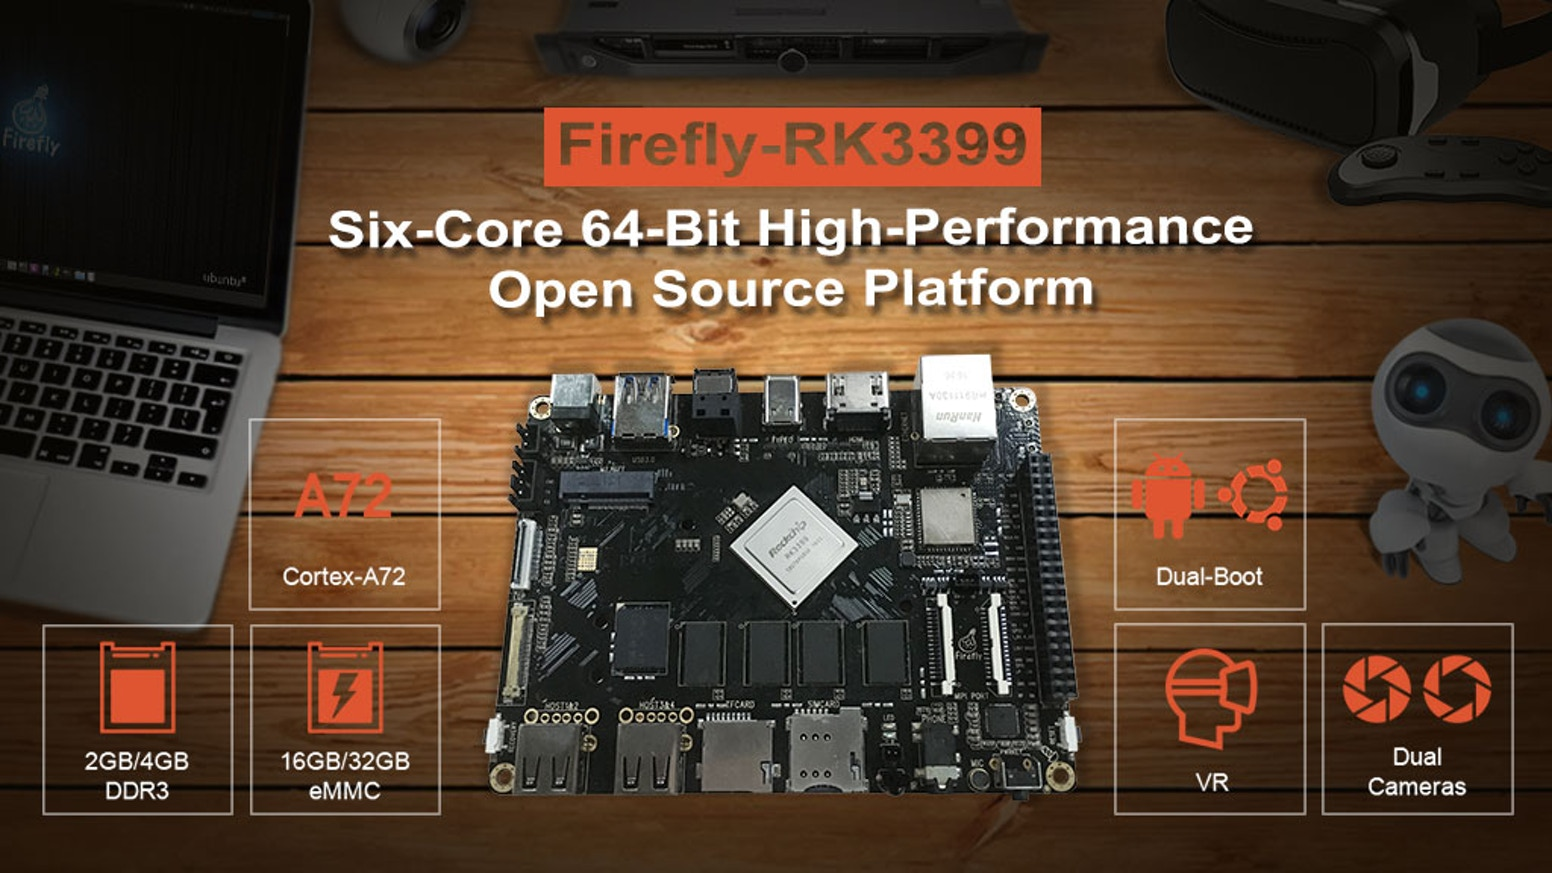 Firefly Rk3399six Core 64 Bit High Performance Platform By Circuit Board Picture Frame Geek Armory With Dual Cortex A72 And Quad A53 Arm